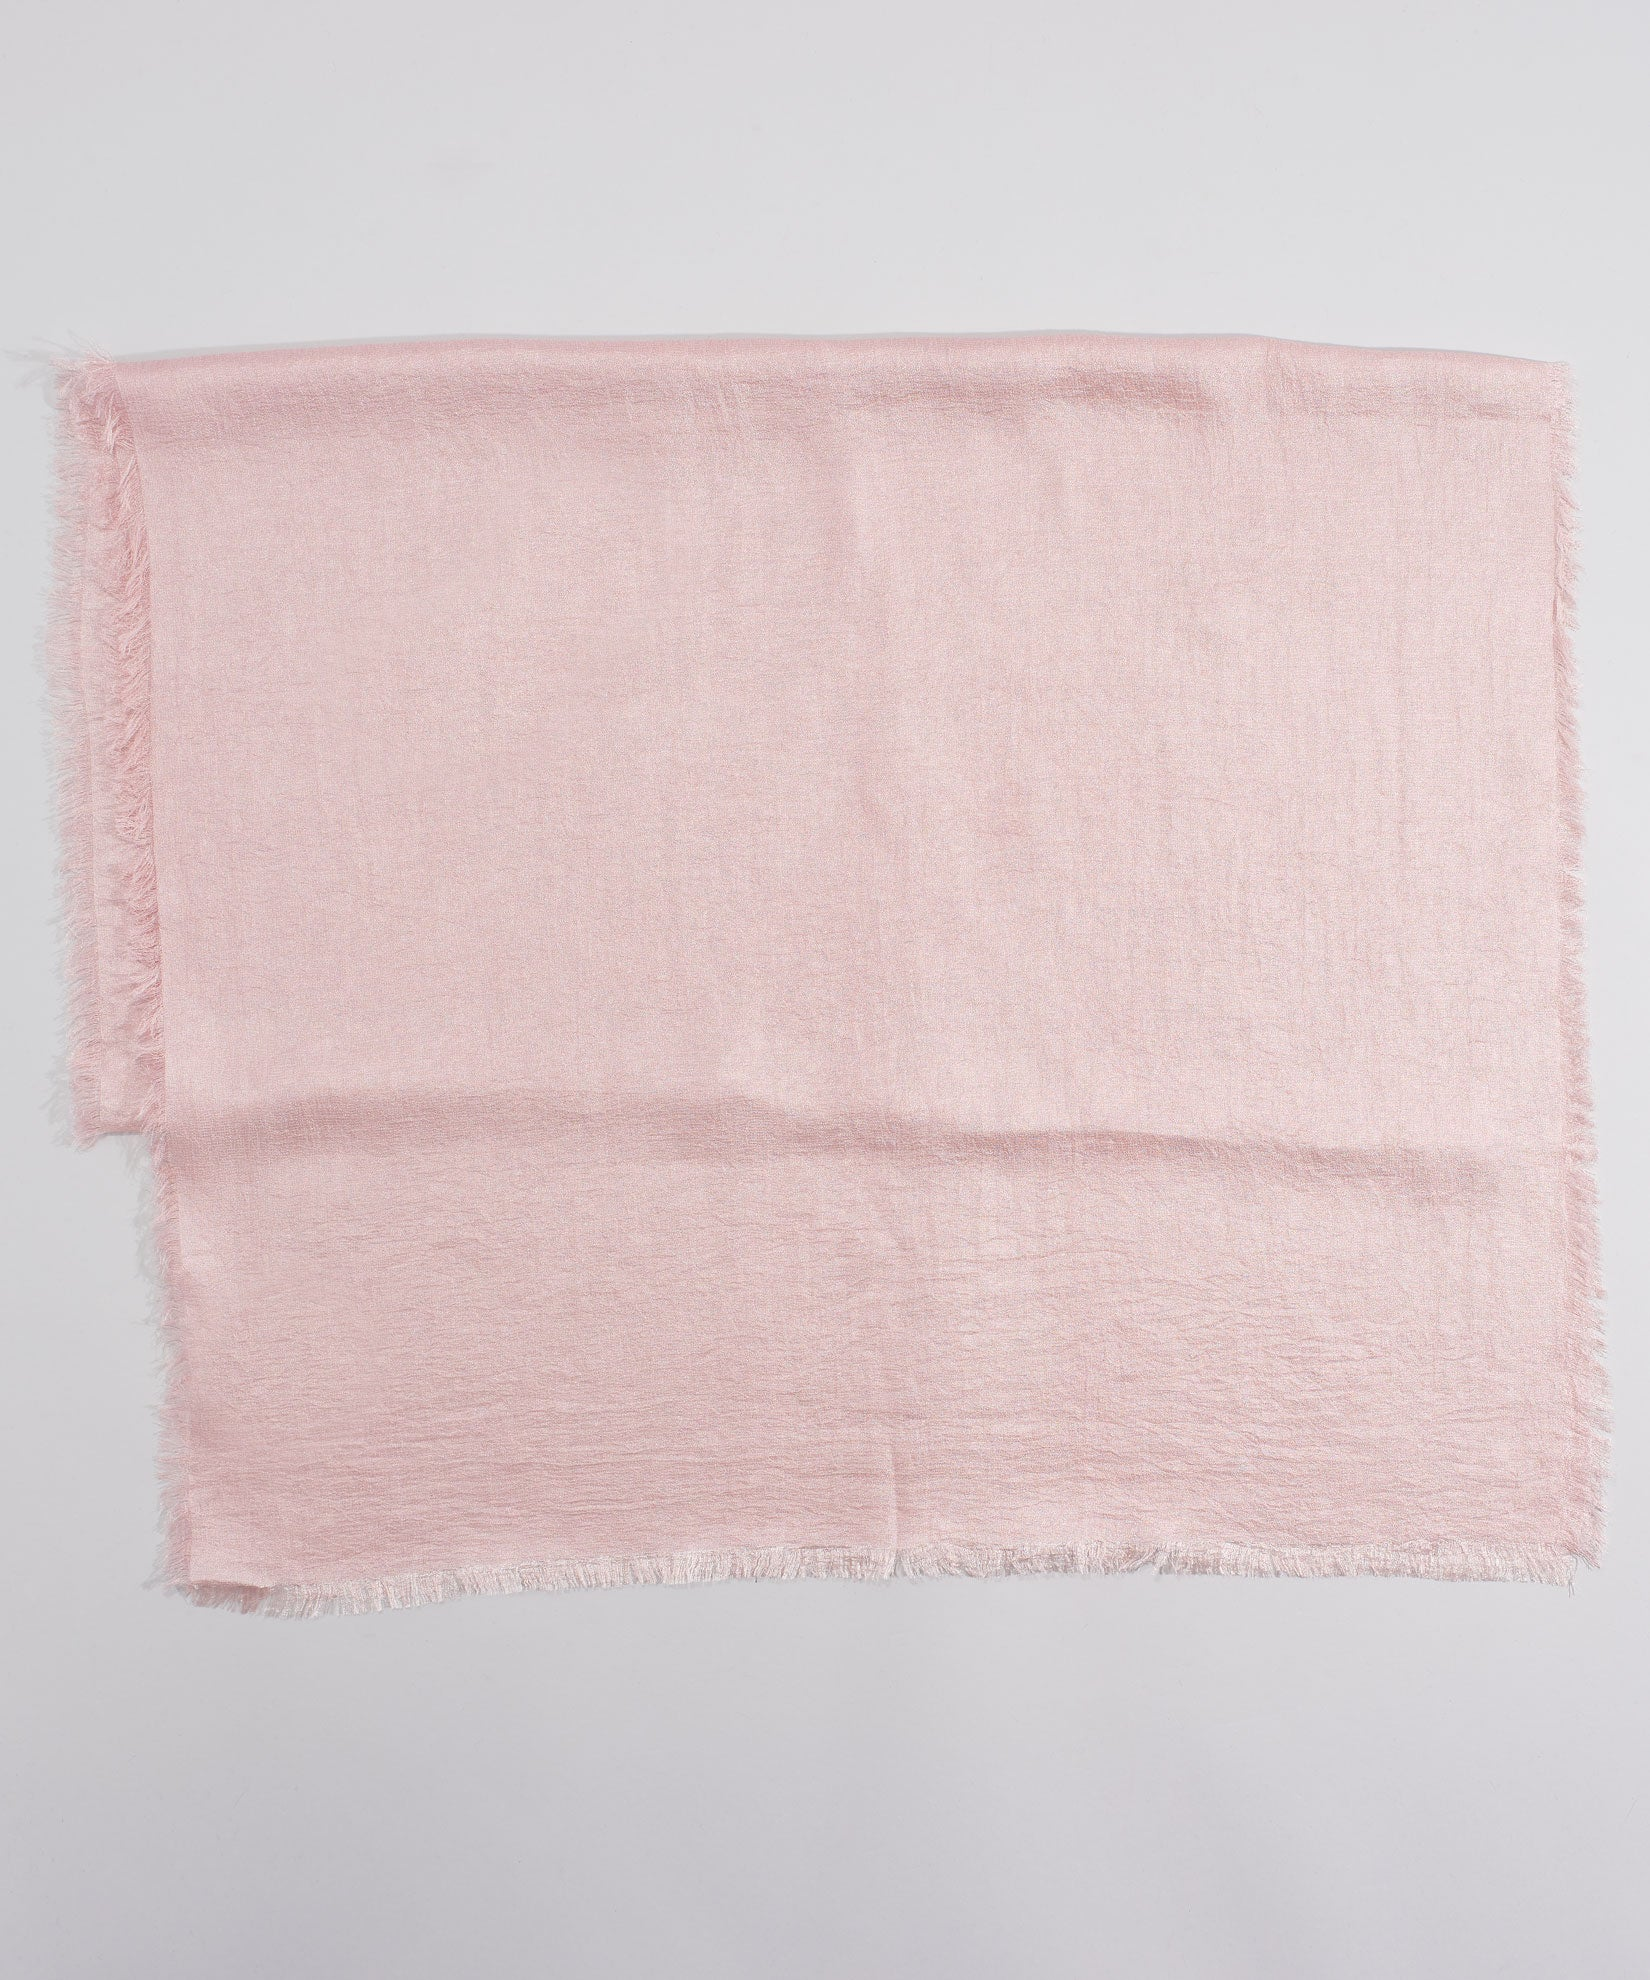 First Blush - Radiance Wrap